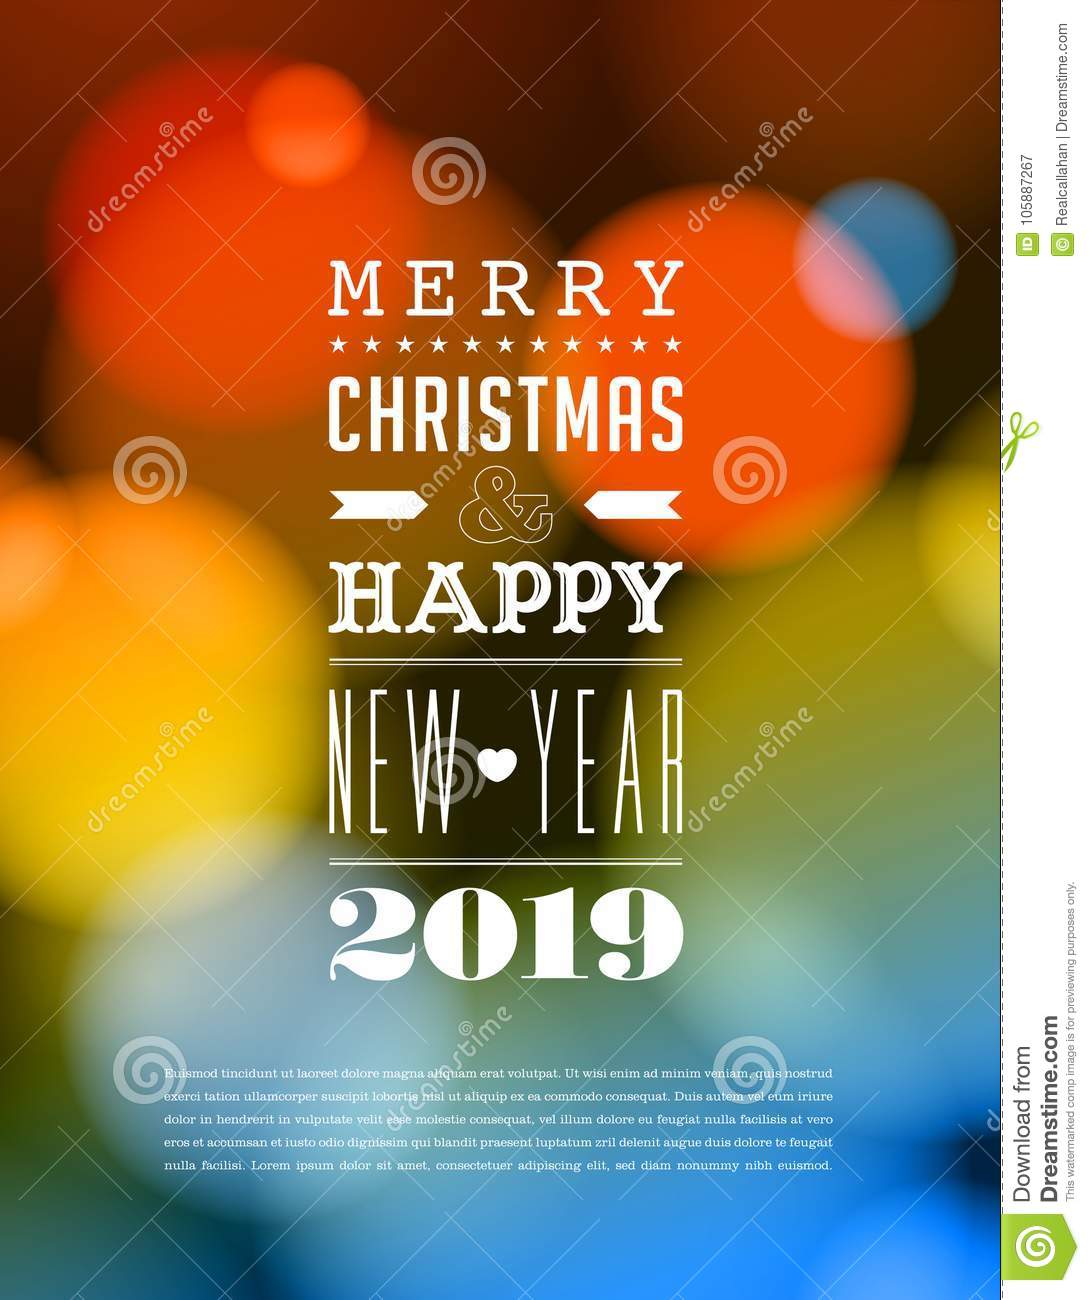 Merry Christmas And Happy New Year 2019 Card Stock Vector